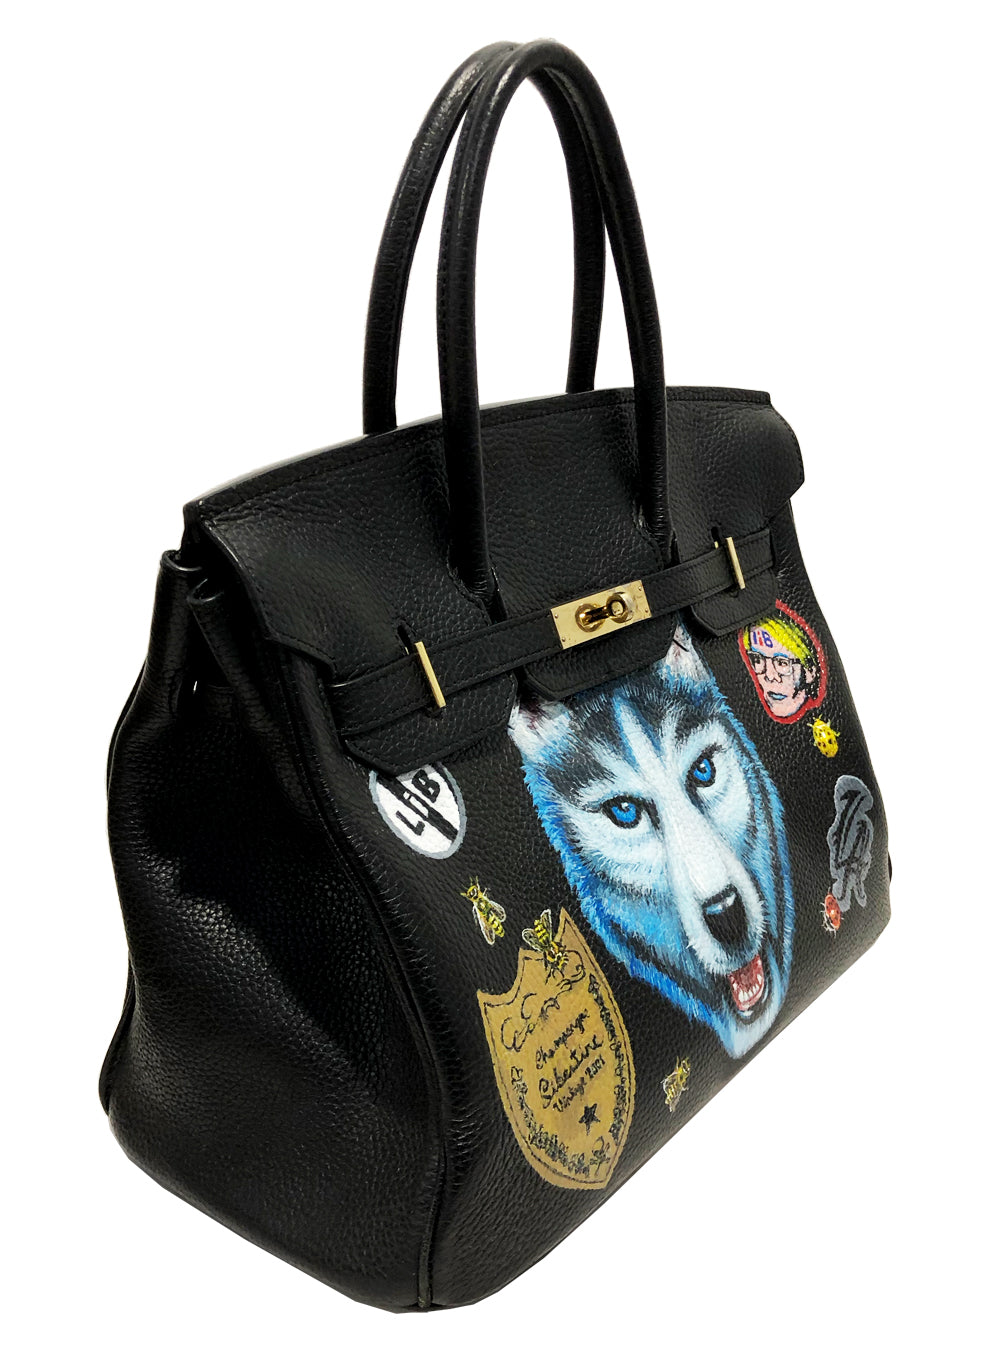 STREET BIRKIN BAG WITH LIBERTINE PAINTINGS - Web Exclusives - Libertine